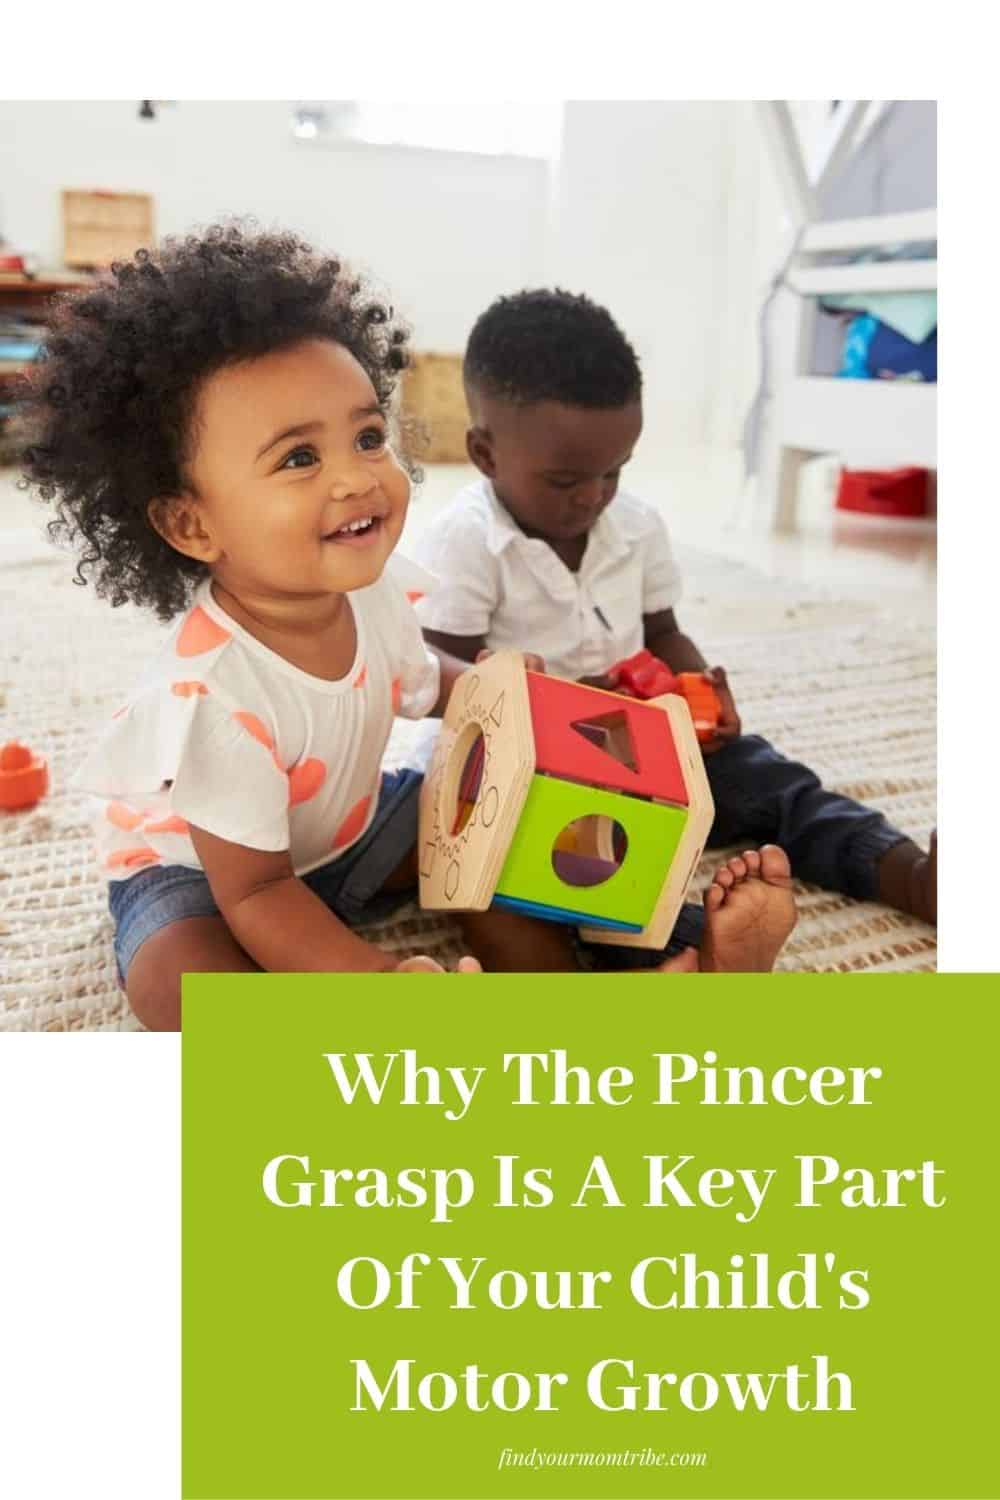 Why The Pincer Grasp Is A Key Part Of Your Child's Motor Growth